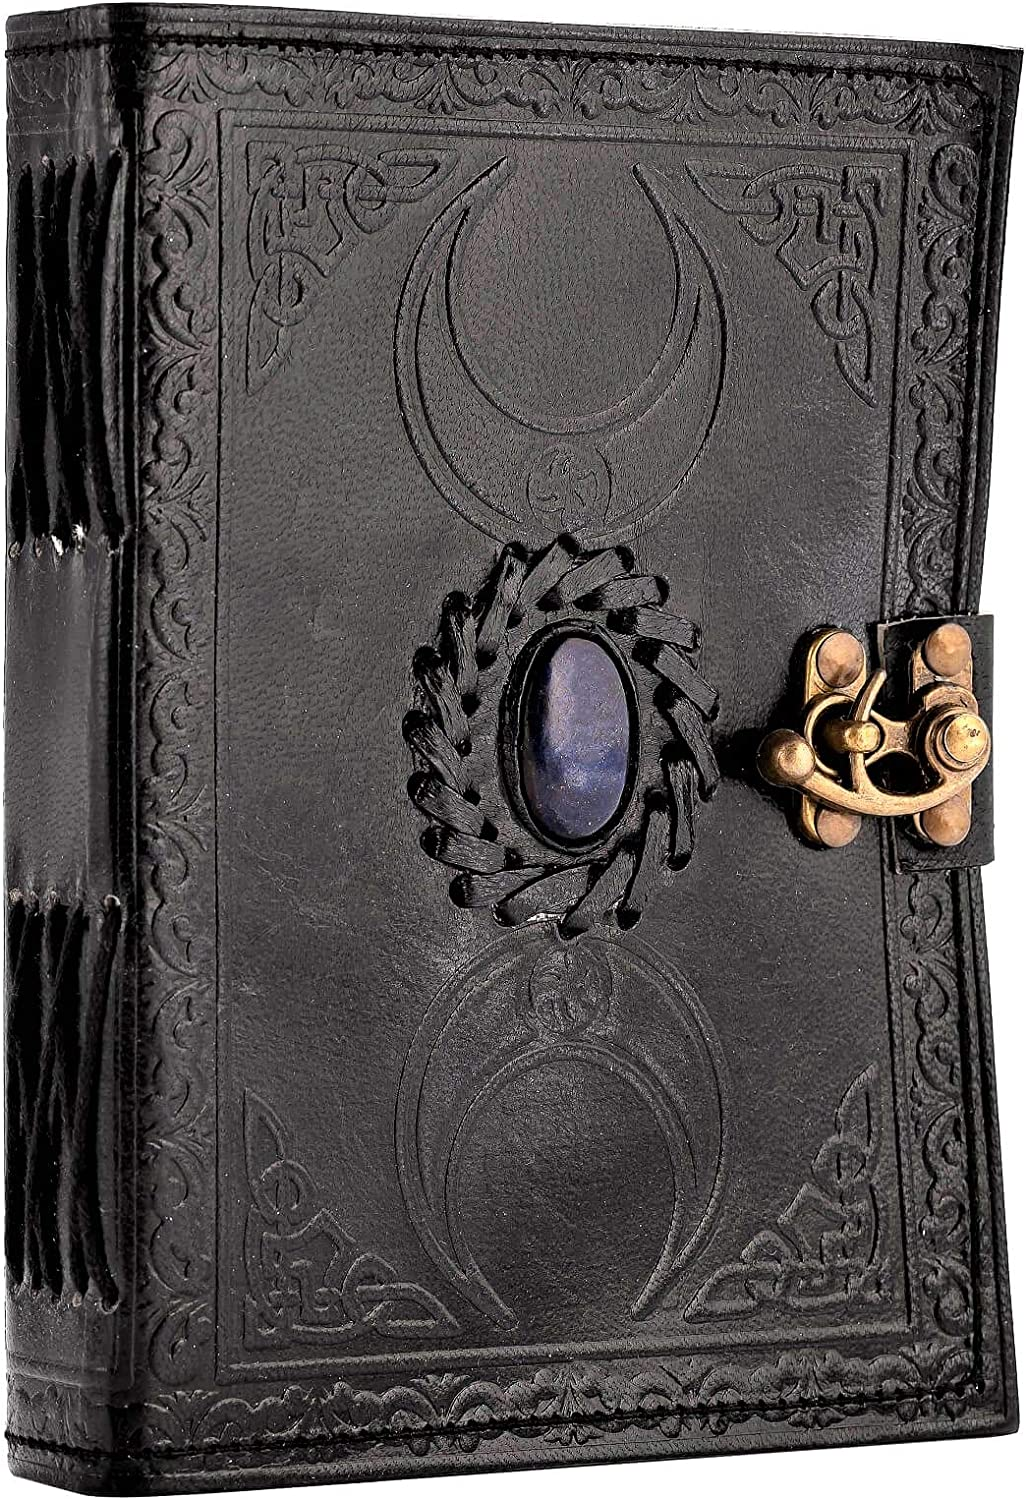 3 Moon Celtic Bullet Journal Book of Shadows /& Magic Spells Unlined Writing Notebook Drawing Sketchbook Scrapbook Personal Organizer Daily Diary Urban Leather Black Lapiz Halloween Journal